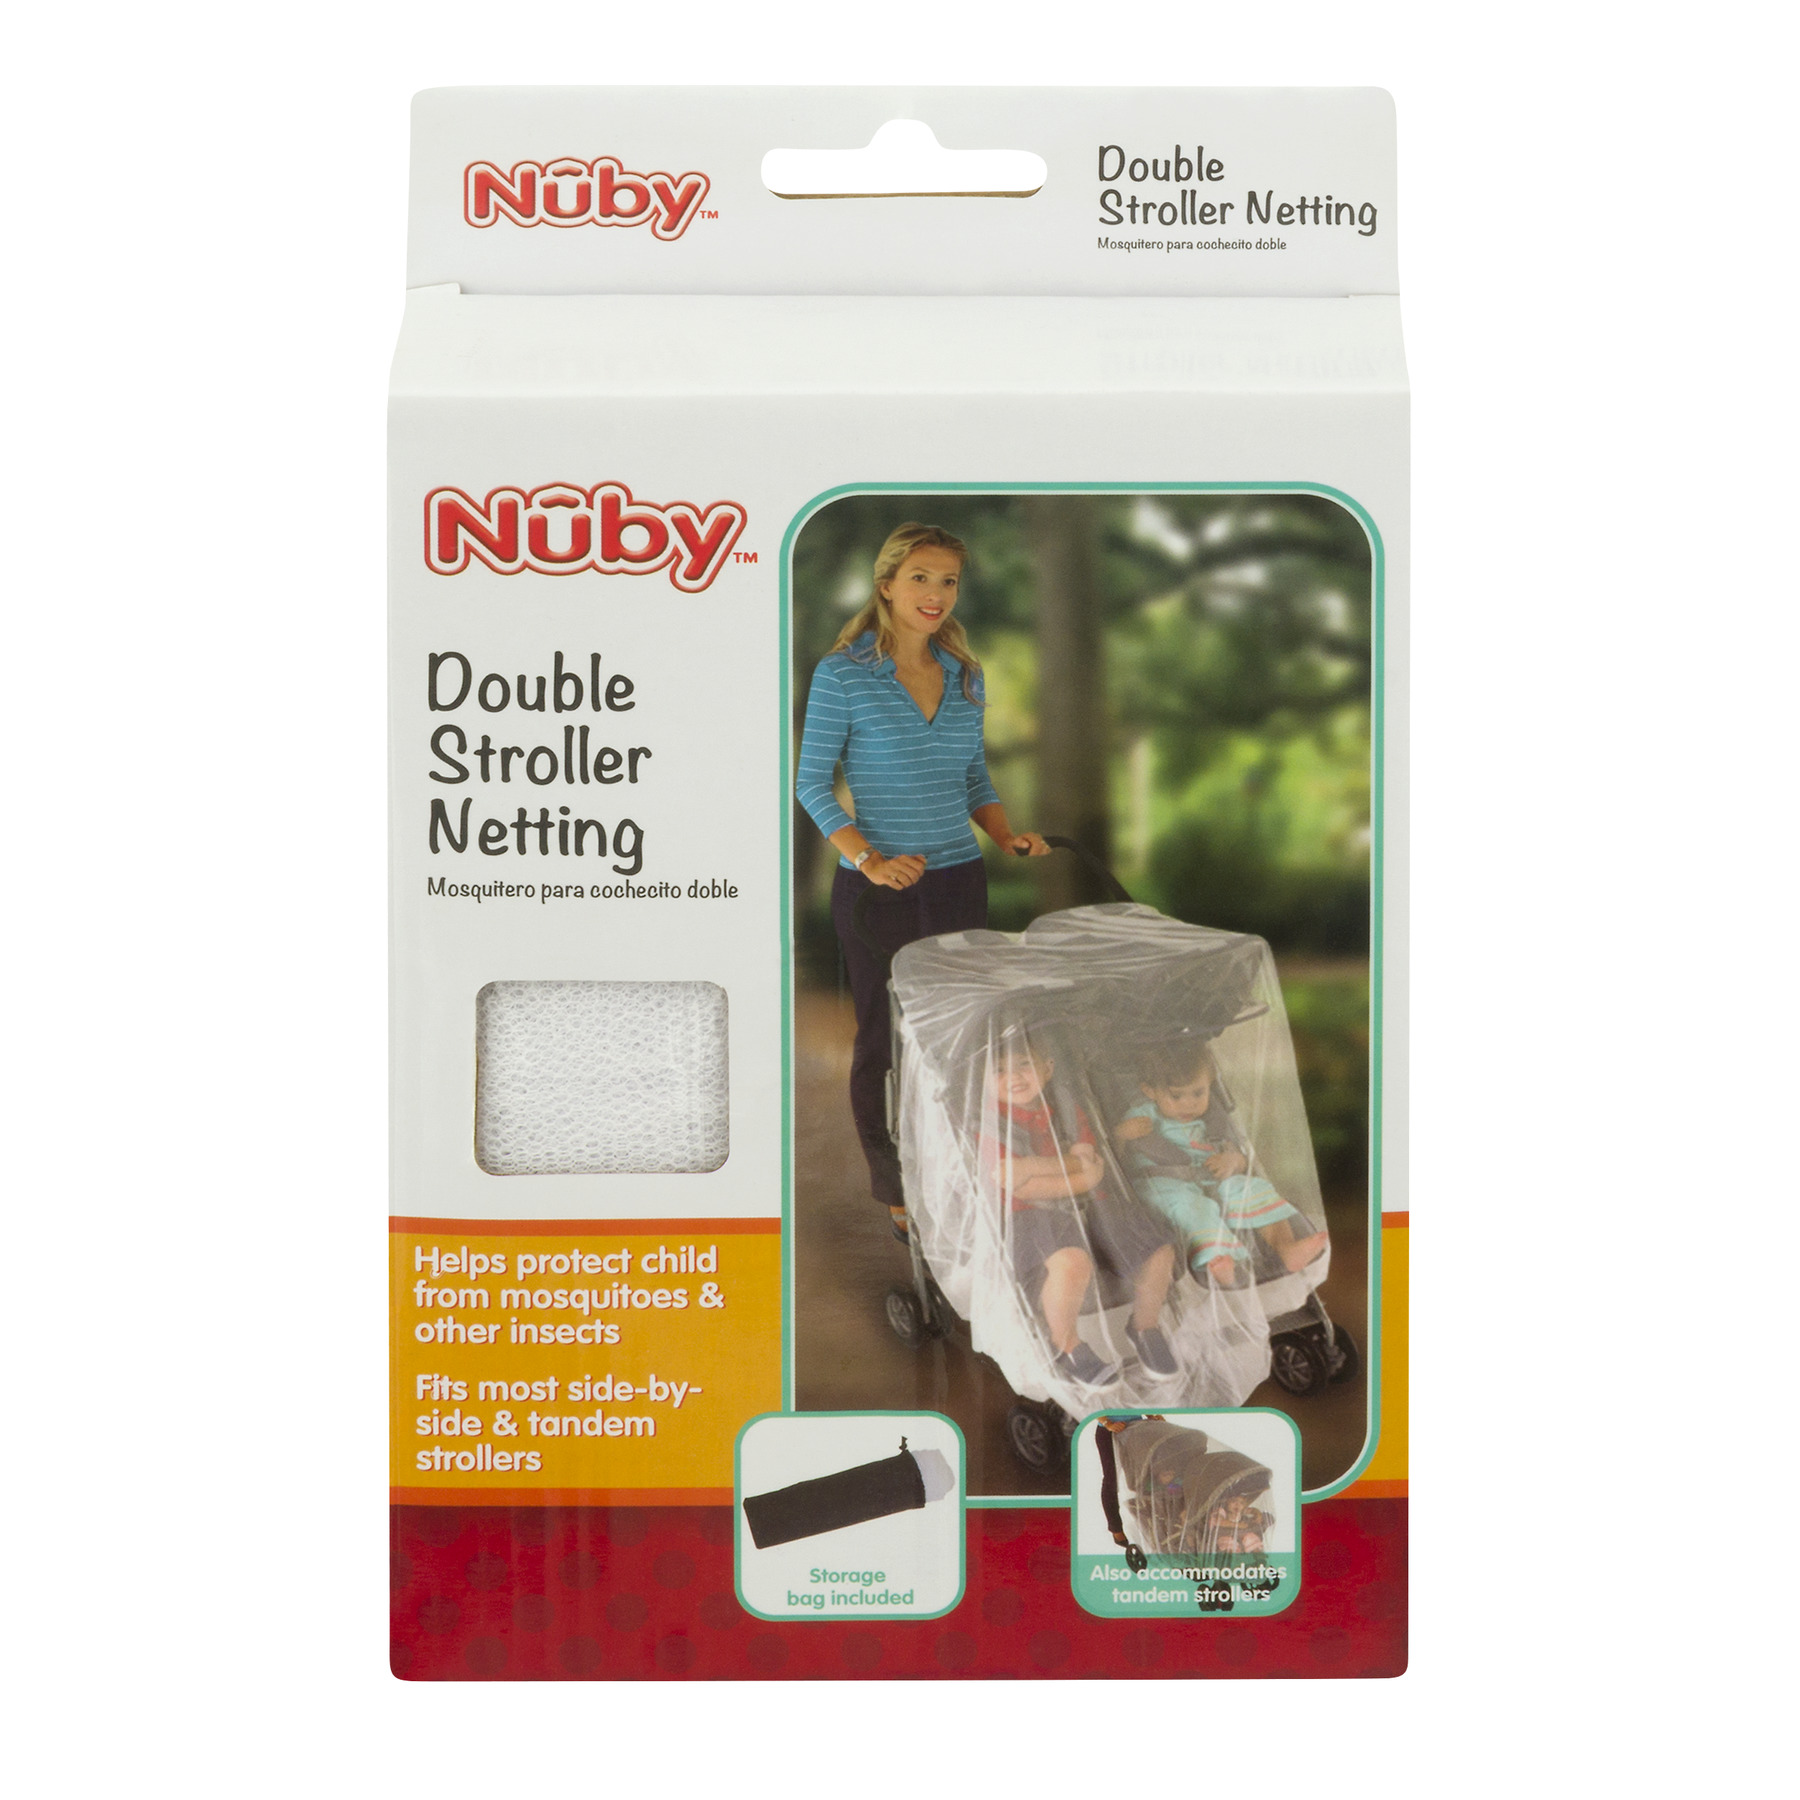 Nuby Double Stroller Netting, 1.0 CT